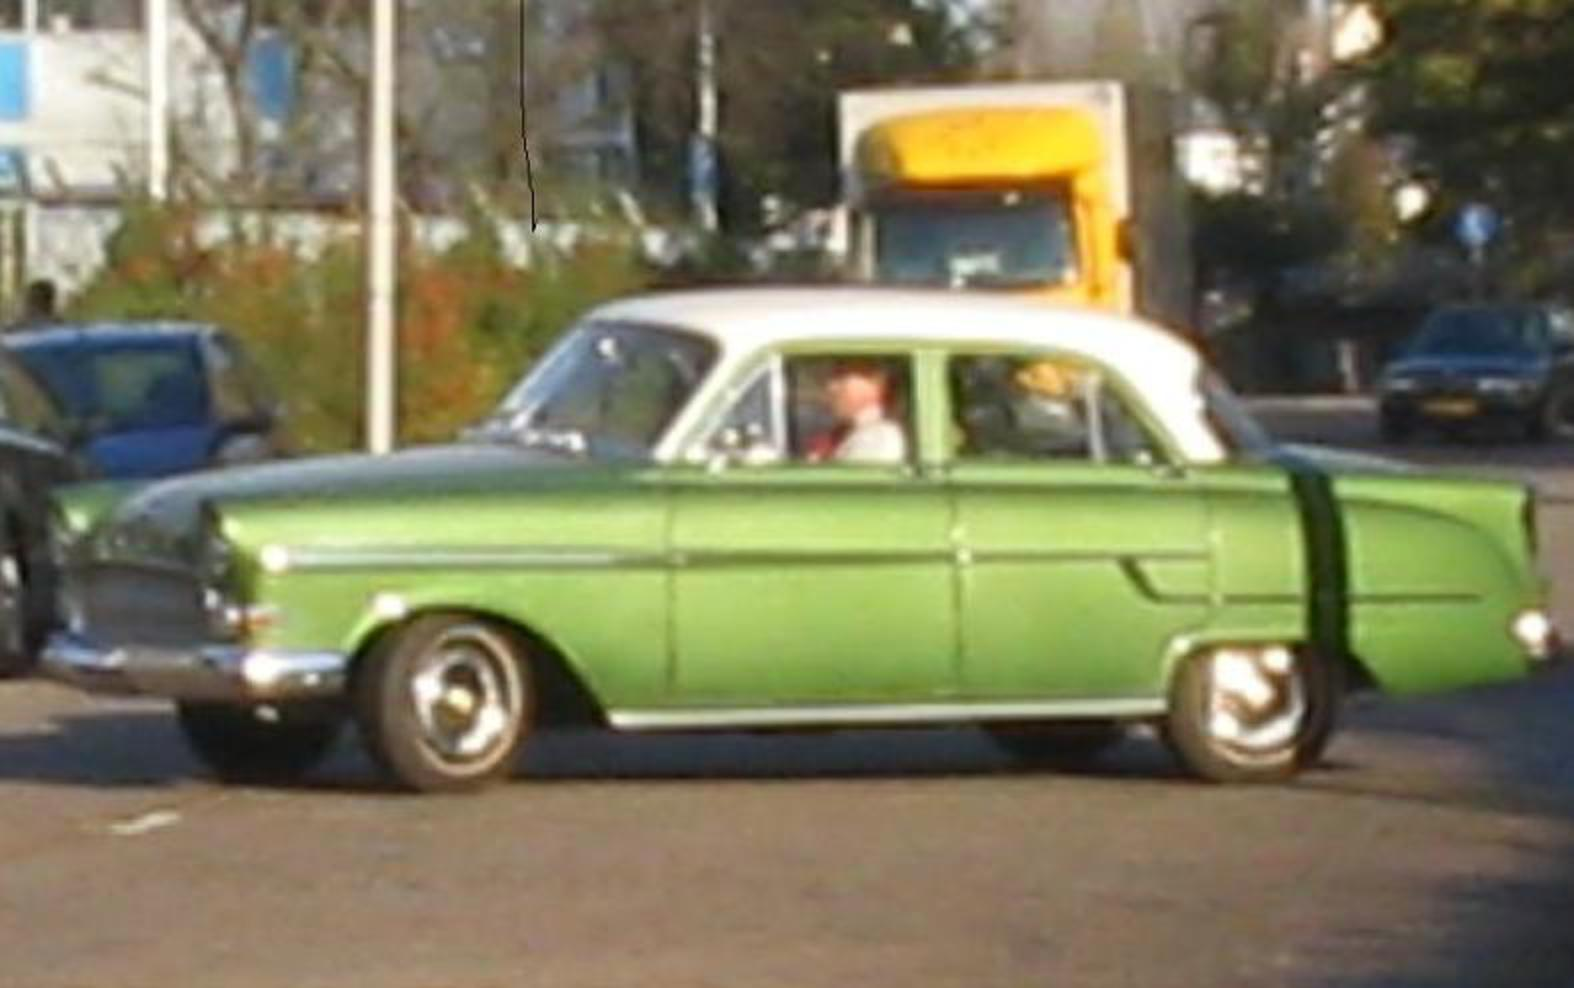 File:Opel record.jpg. No higher resolution available.